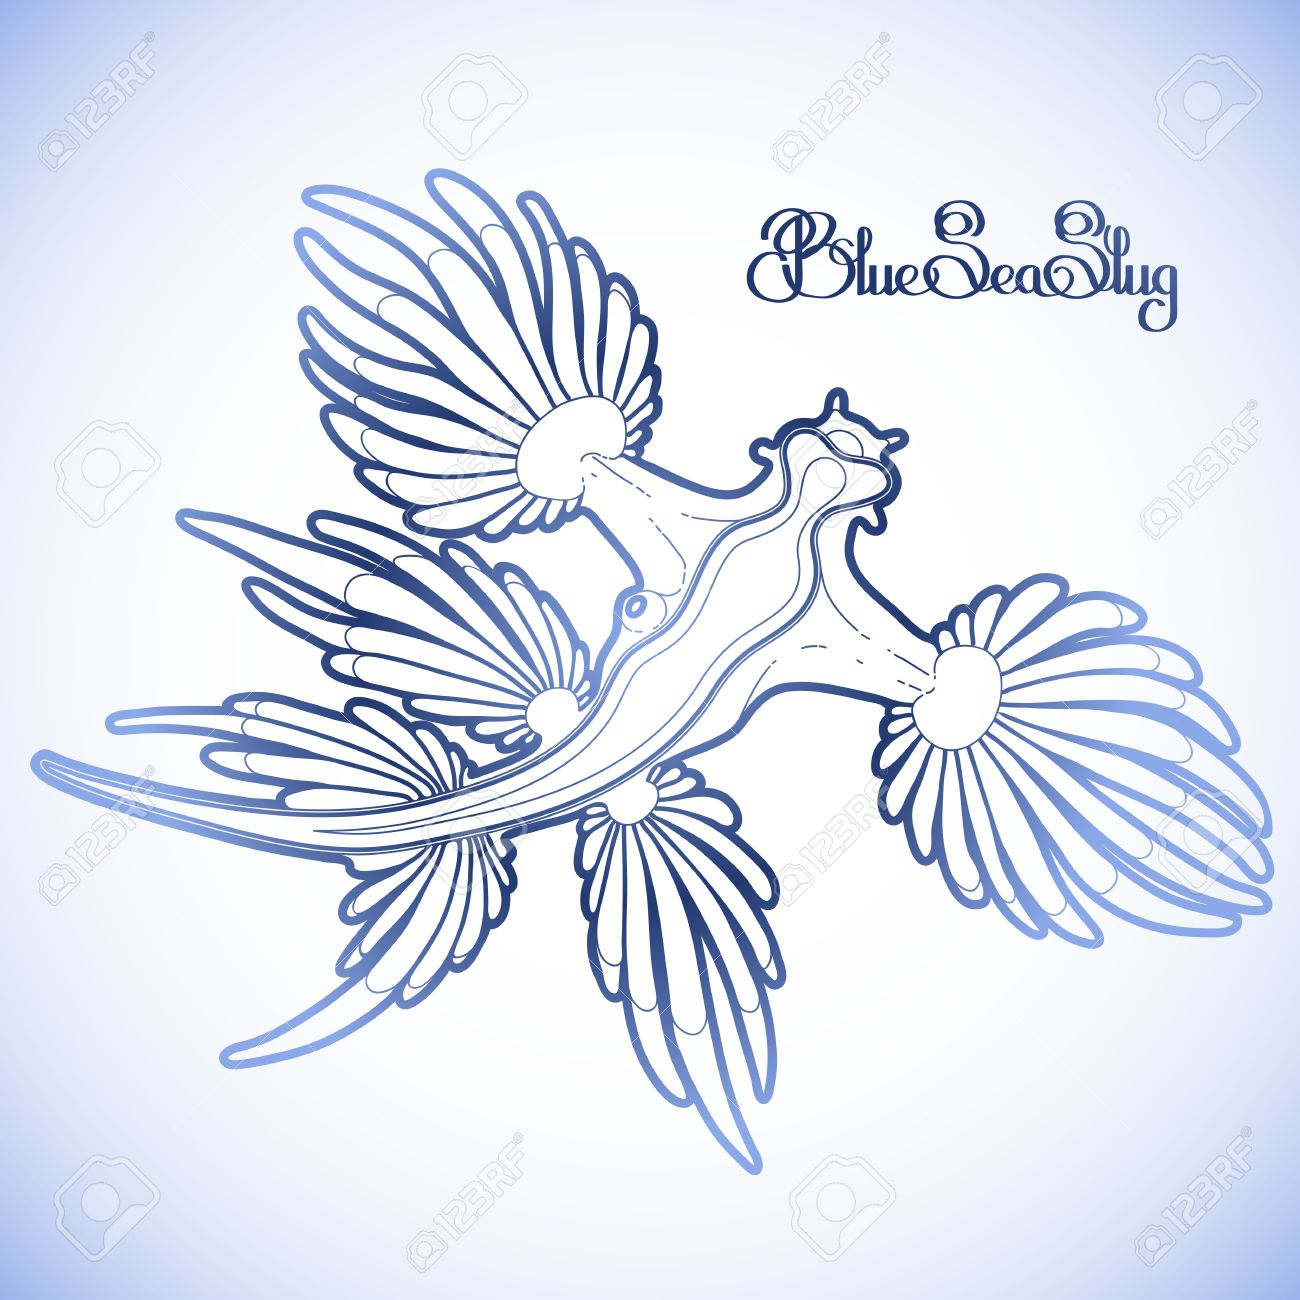 1300x1300 Glaucus Atlanticus. Blue Sea Slug Drawn In Line Art Style. Blue